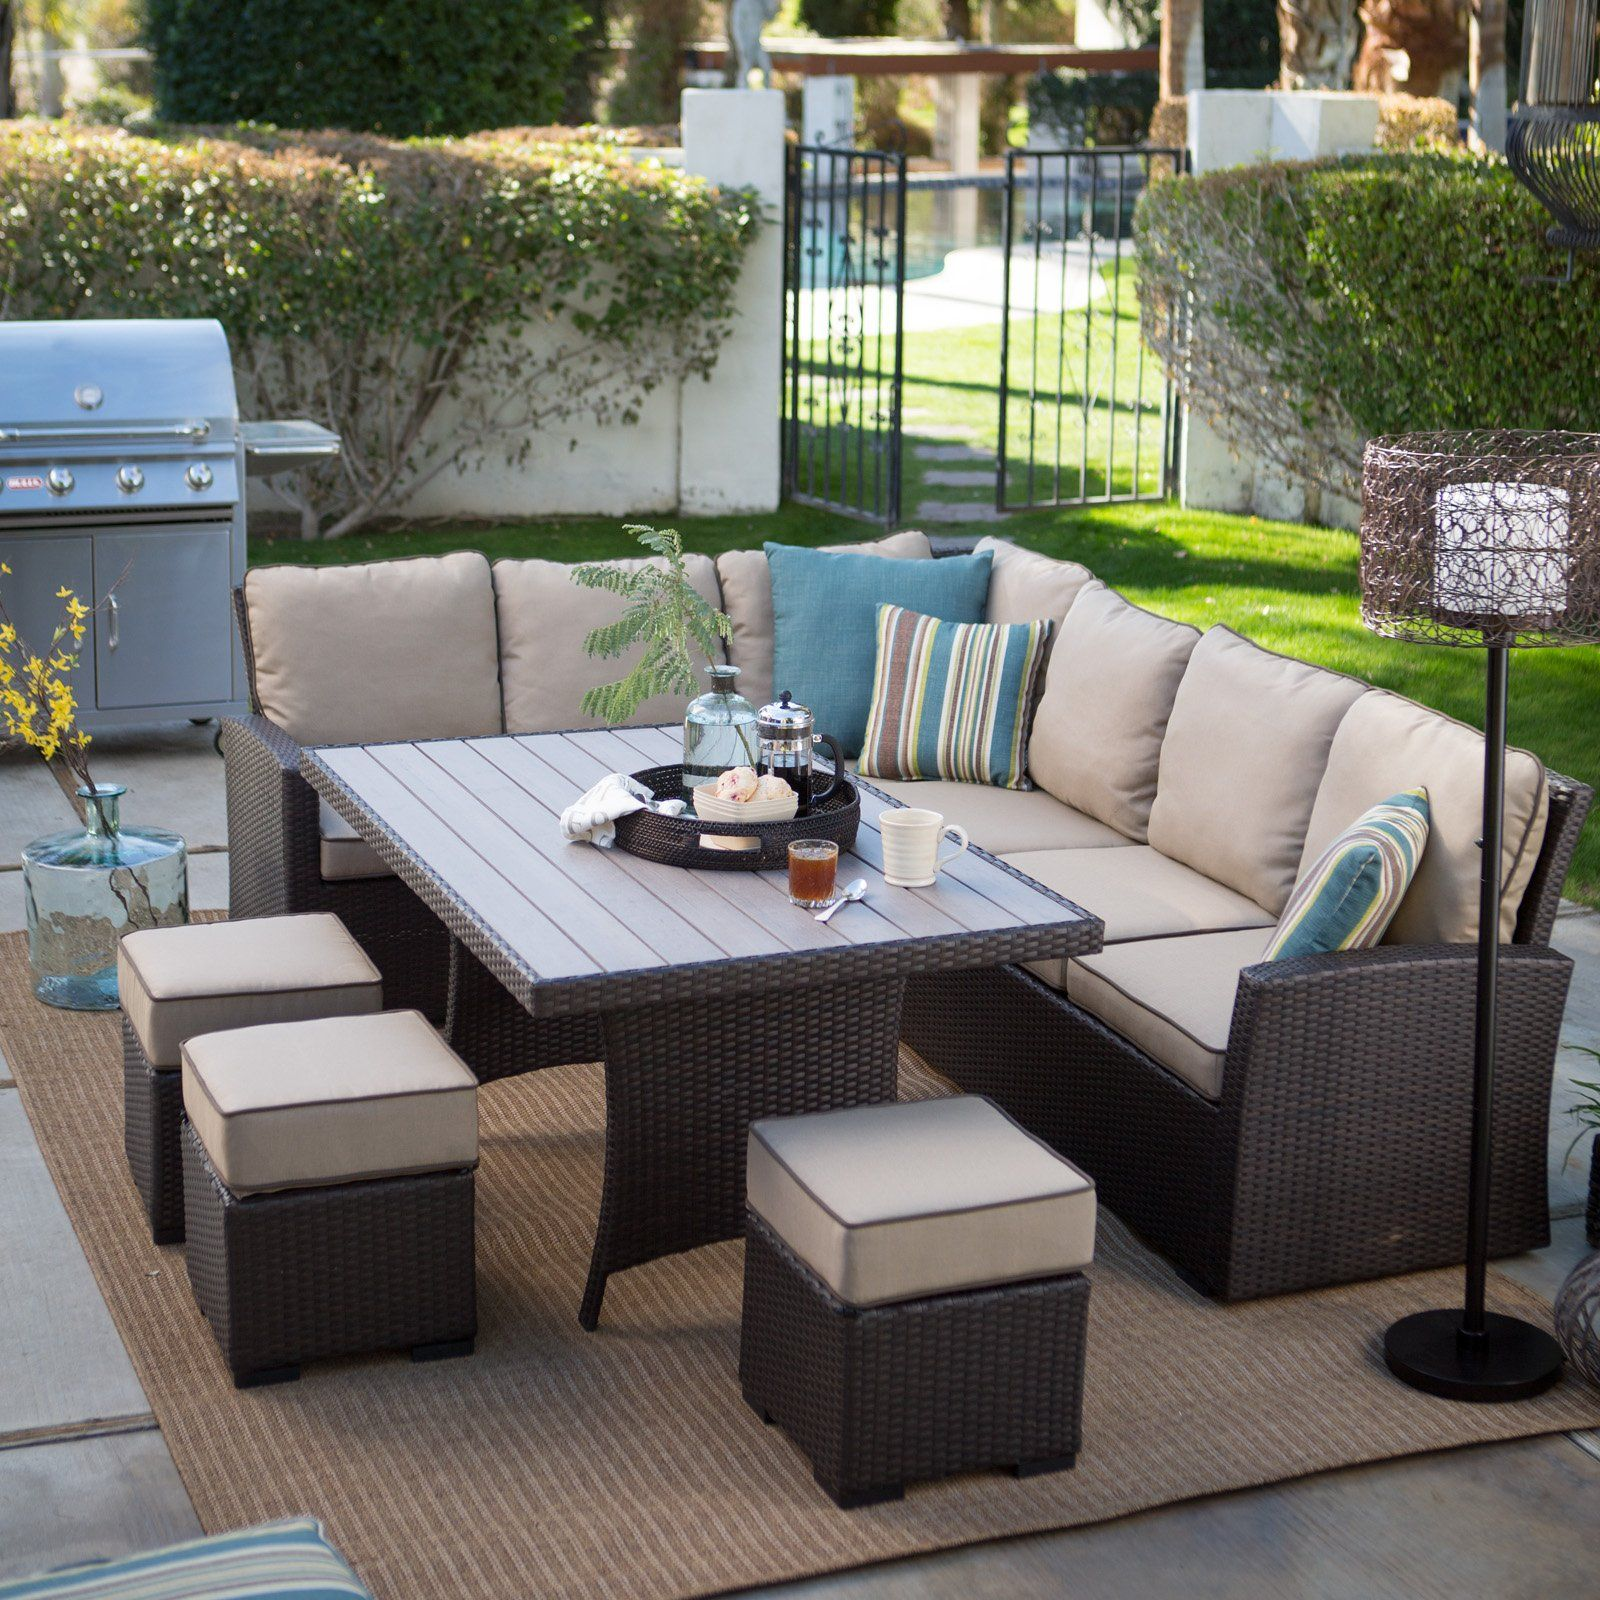 Have To Have It Belham Living Monticello All Weather Wicker Sofa Sectional Patio Dining Set